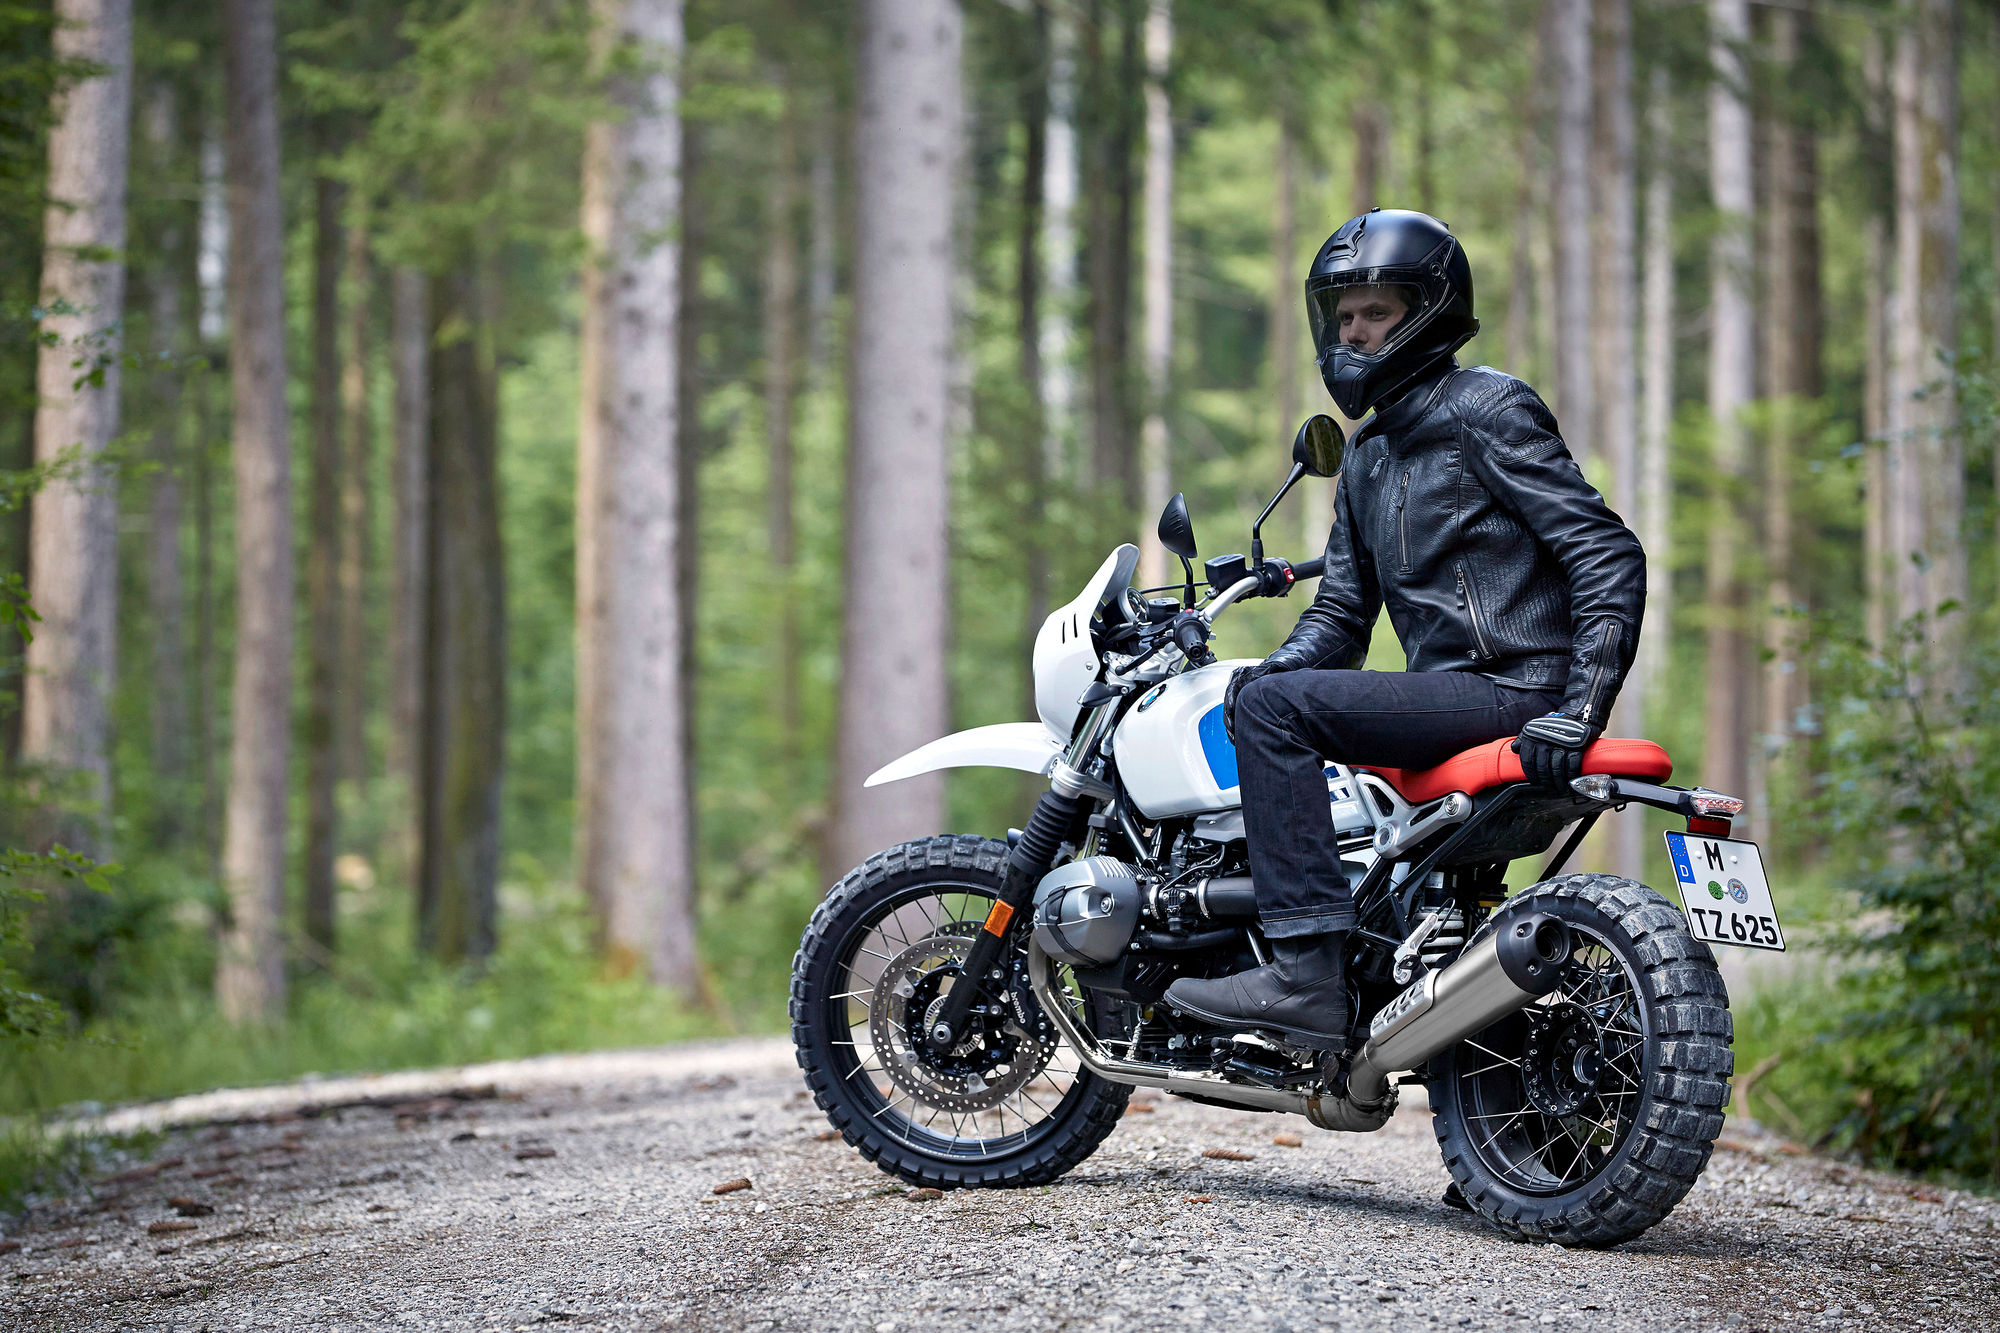 2018 bmw r ninet urban g s. perfect urban see more of mdu0027s great photography on 2018 bmw r ninet urban g s